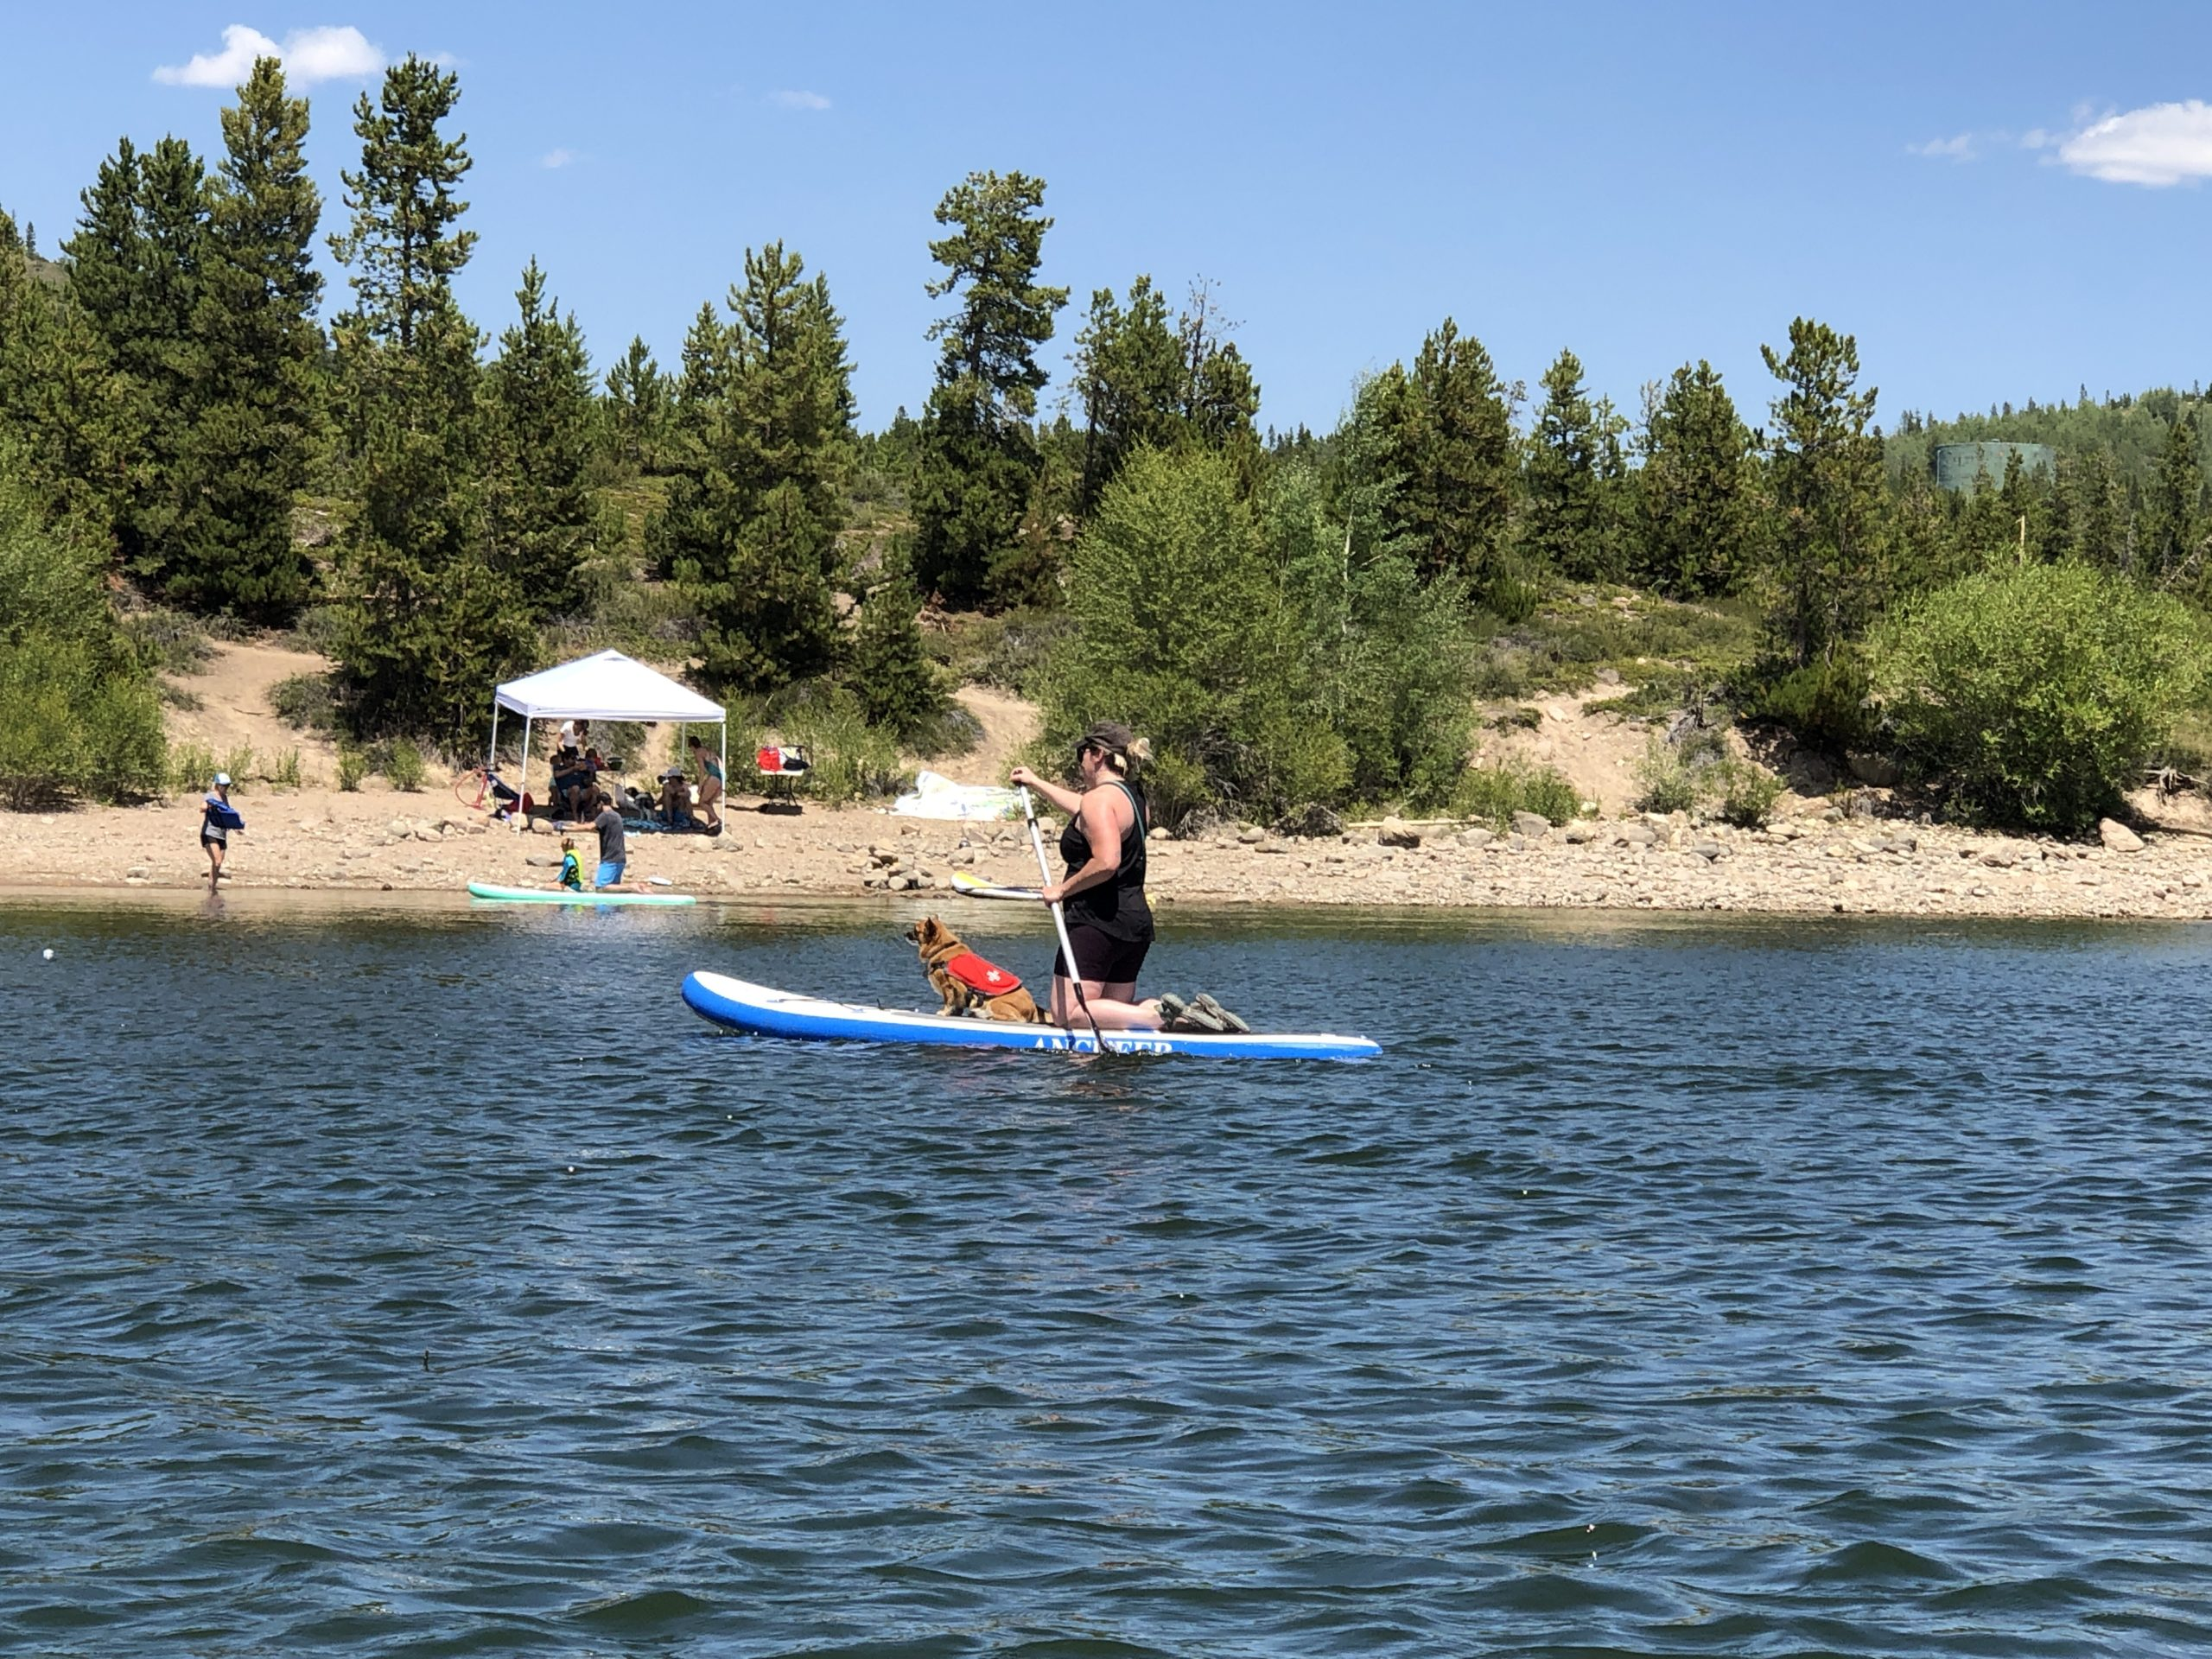 A woman on a paddle board that doesn't have a personal flotation device.